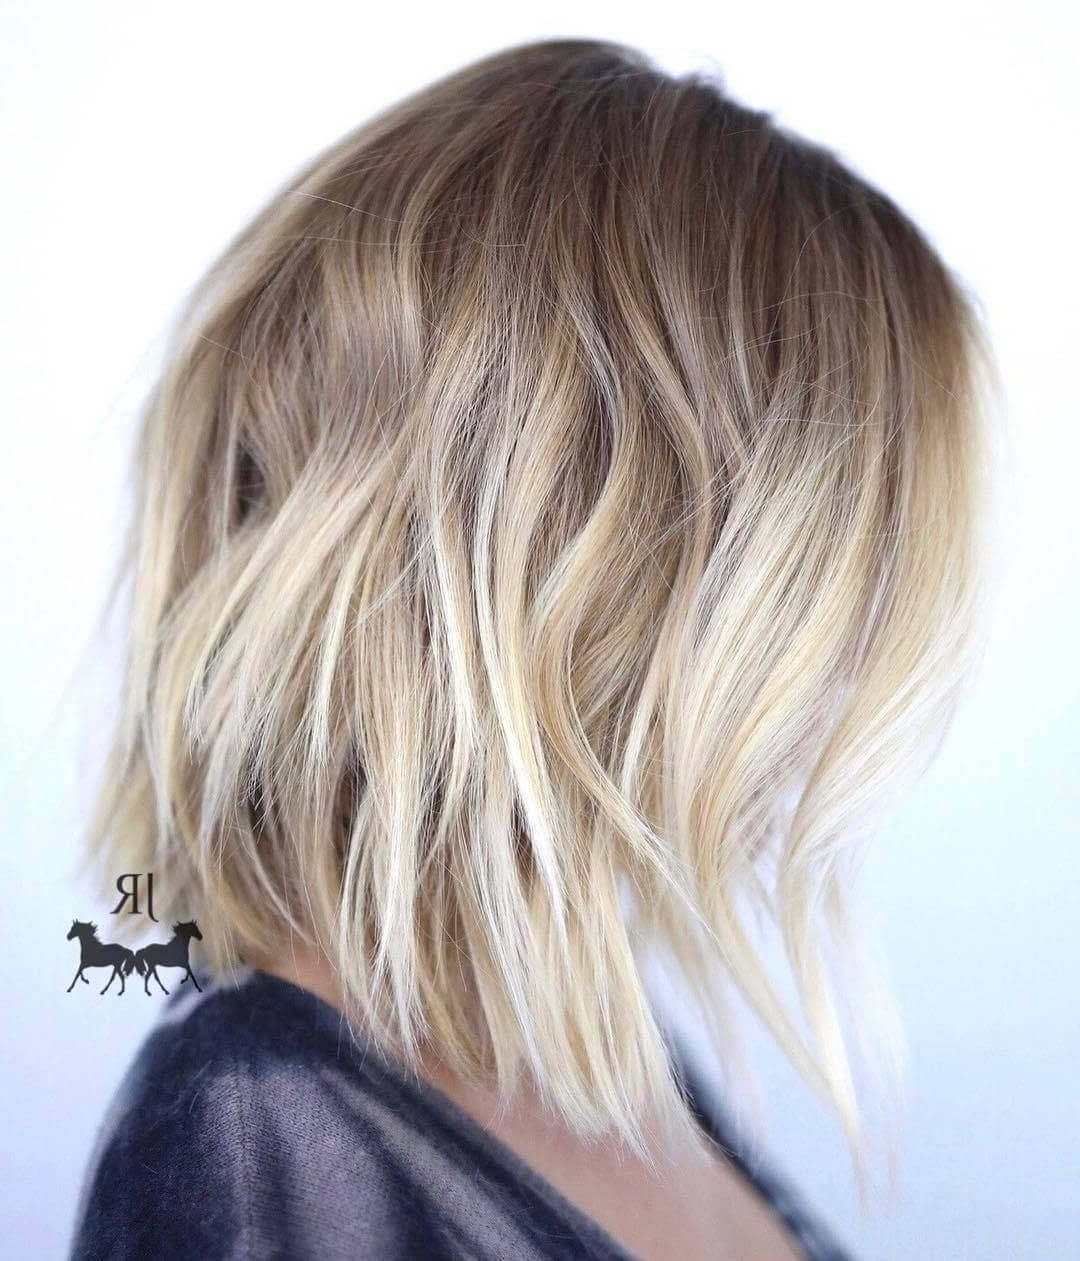 50 Fresh Short Blonde Hair Ideas To Update Your Style In 2018 Pertaining To Well Liked Two Tier Caramel Blonde Lob Hairstyles (View 15 of 20)